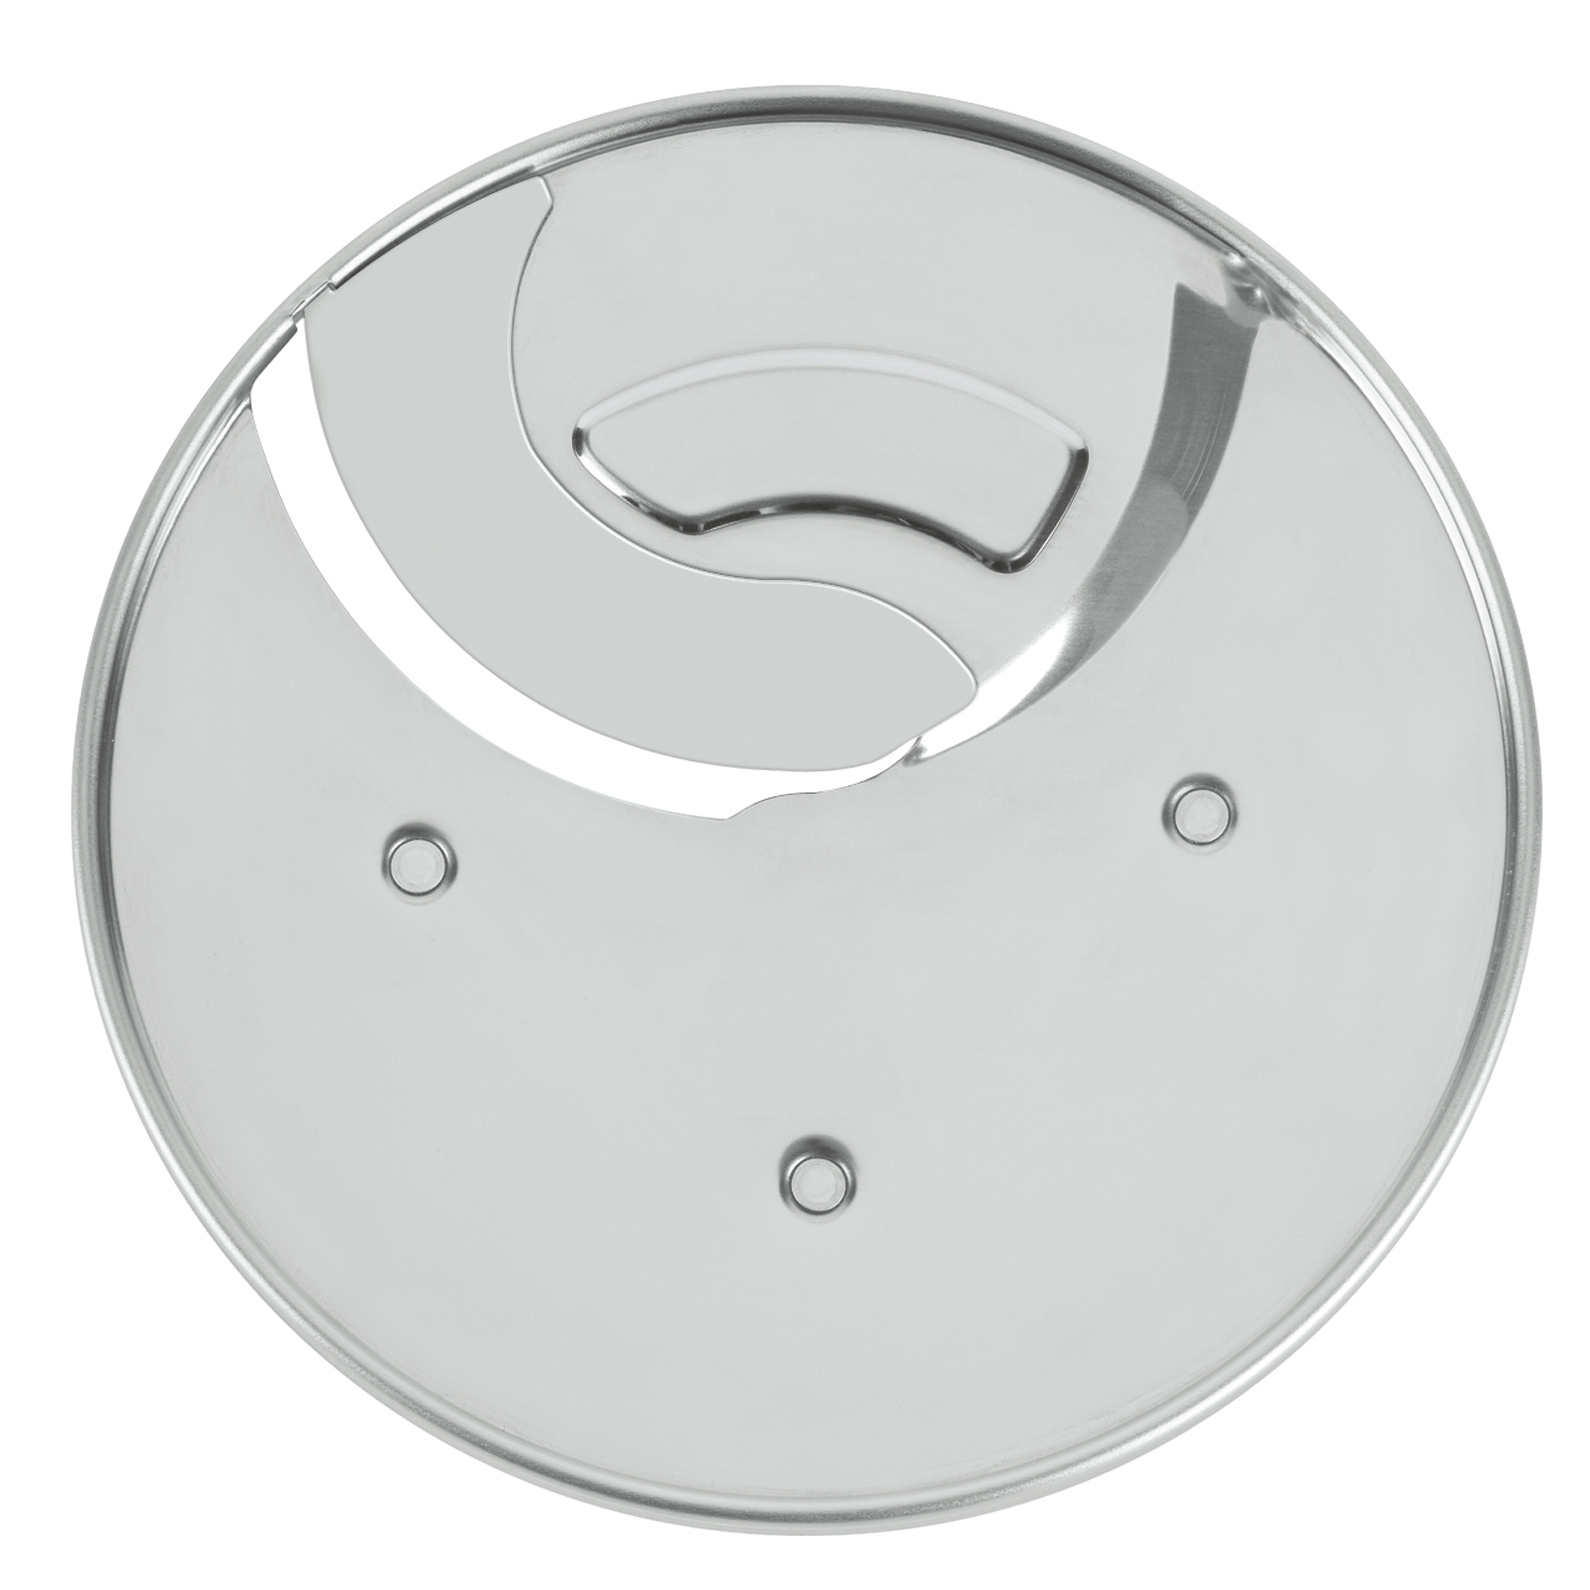 Waring WFP118 food processor, disc plate, slicing